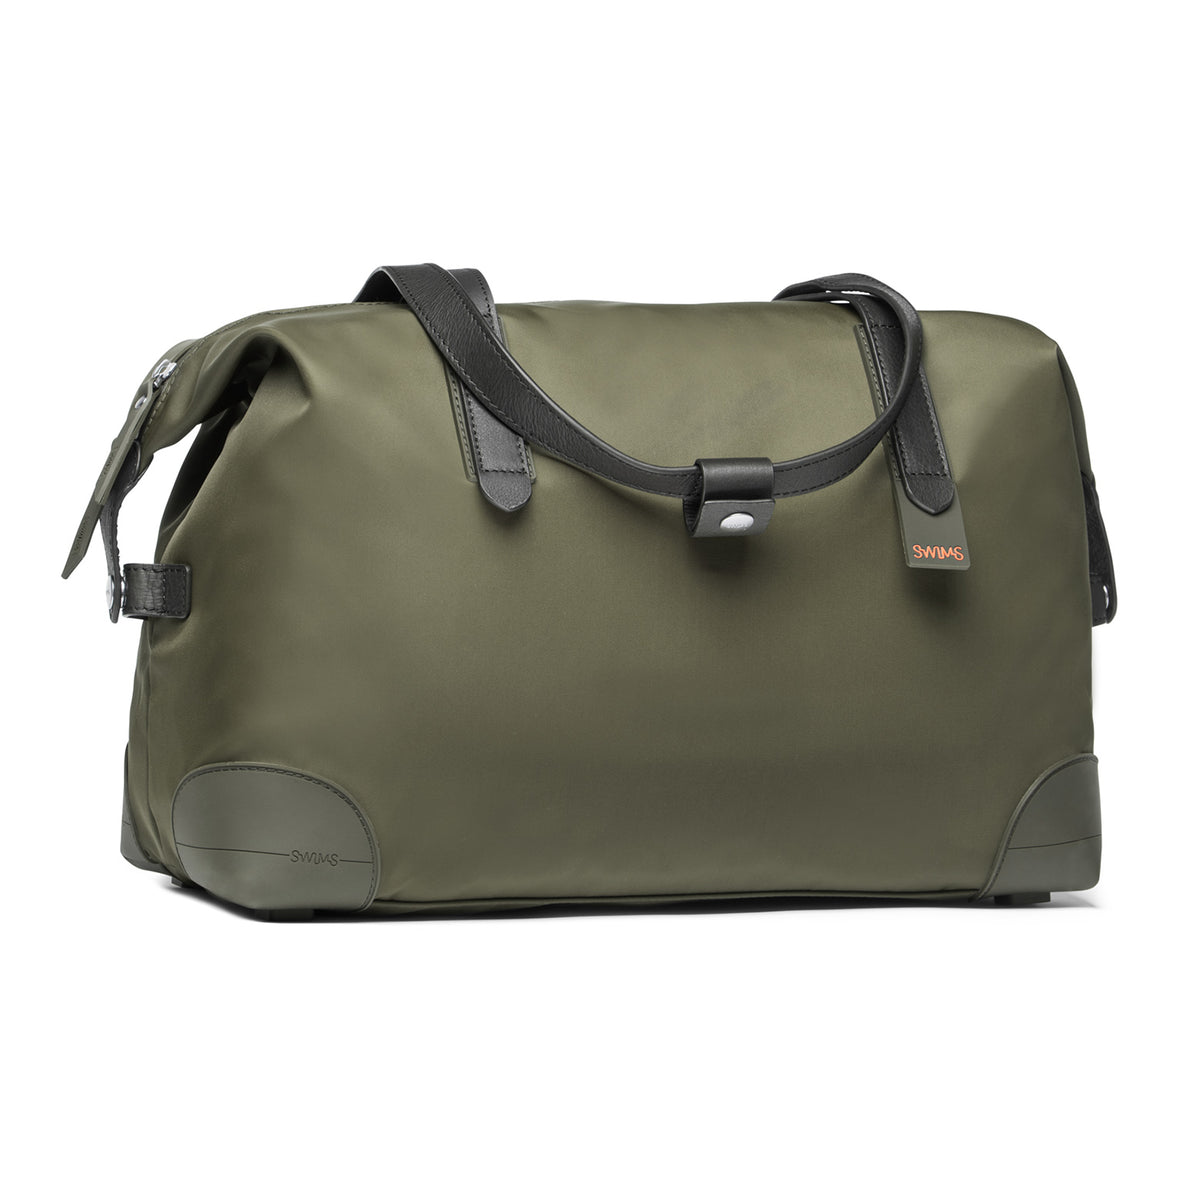 24H Holdall - background::white,variant::Olive